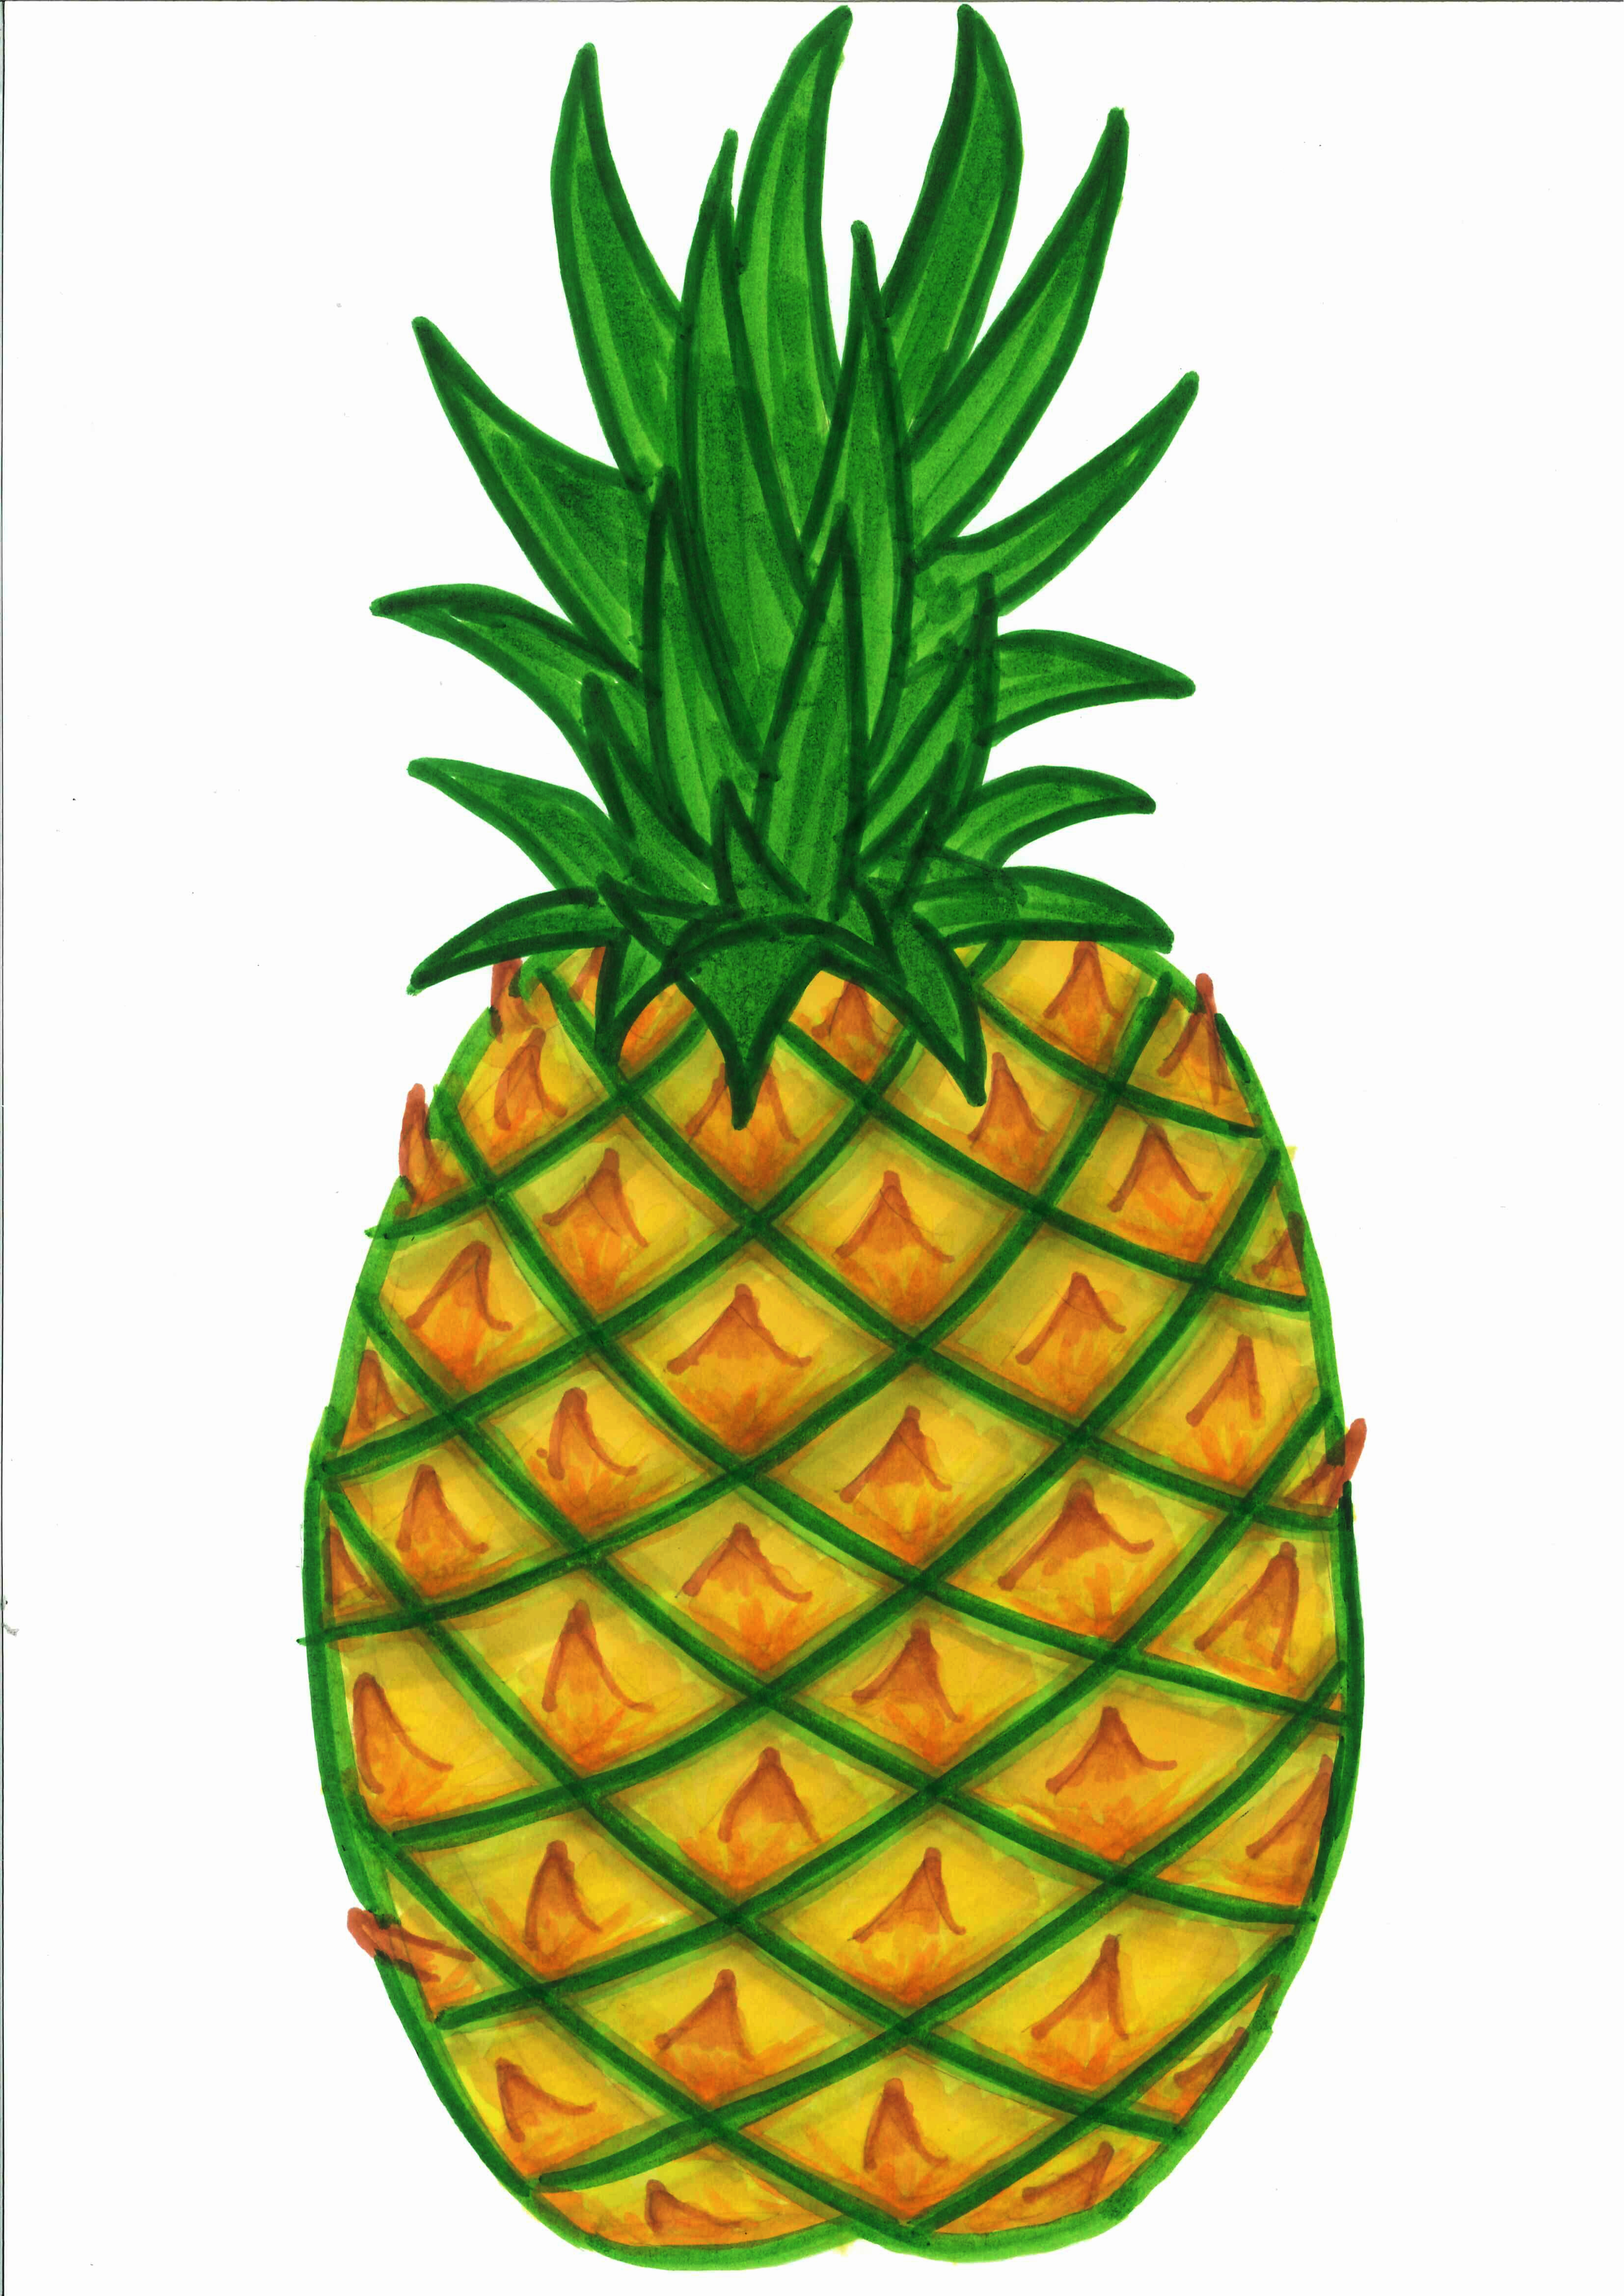 Clipart Of Pineapple - ClipArt Best - ClipArt Best